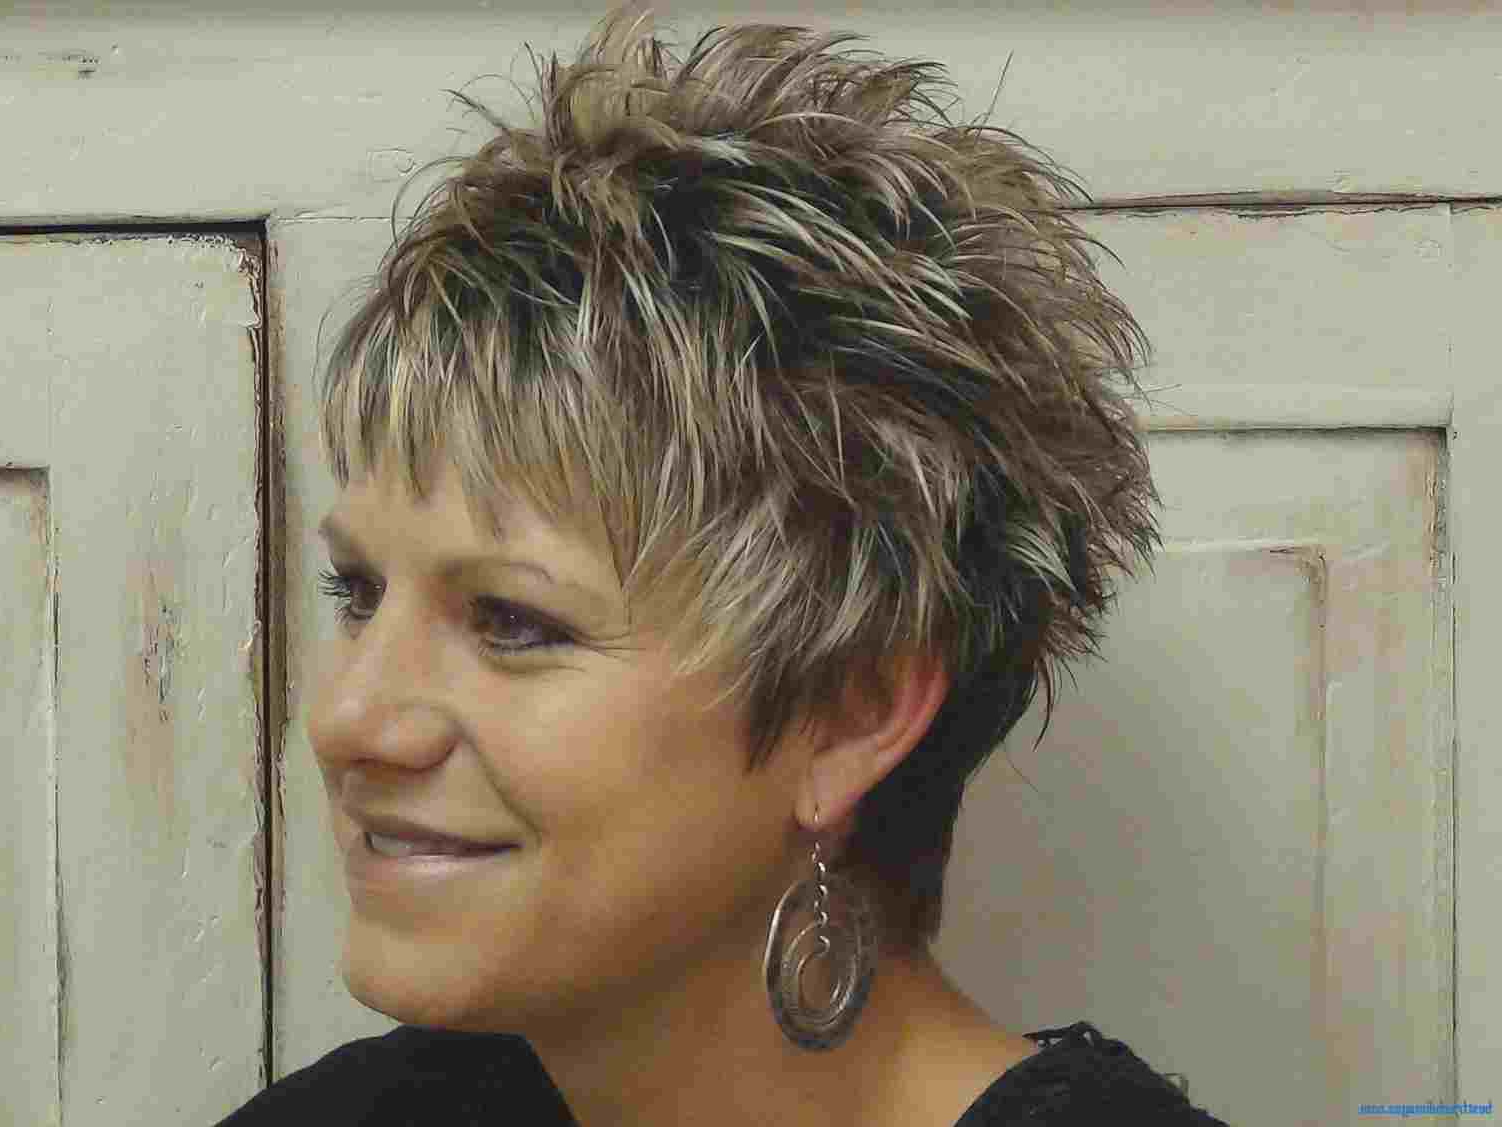 Awesome Rhreplicamkorg Style Round Face Short Hairstyles For Fine In Short Hairstyles For Round Faces And Thin Fine Hair (Gallery 16 of 25)